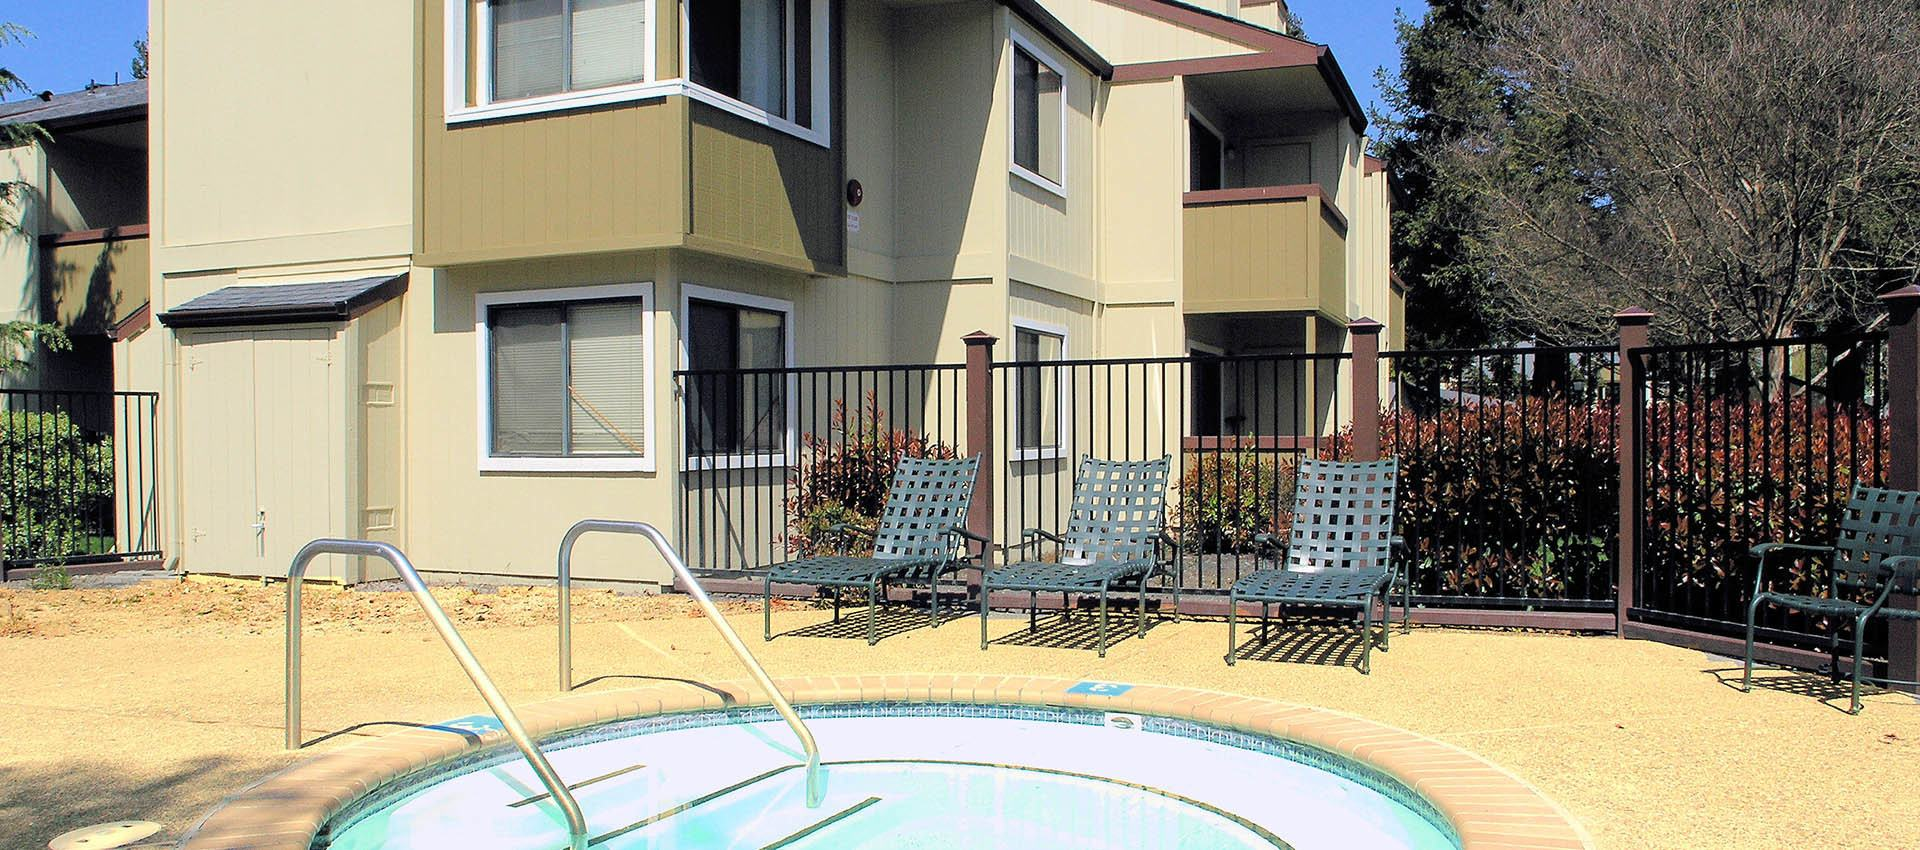 Hot tub at apartments in Rohnert Park, CA